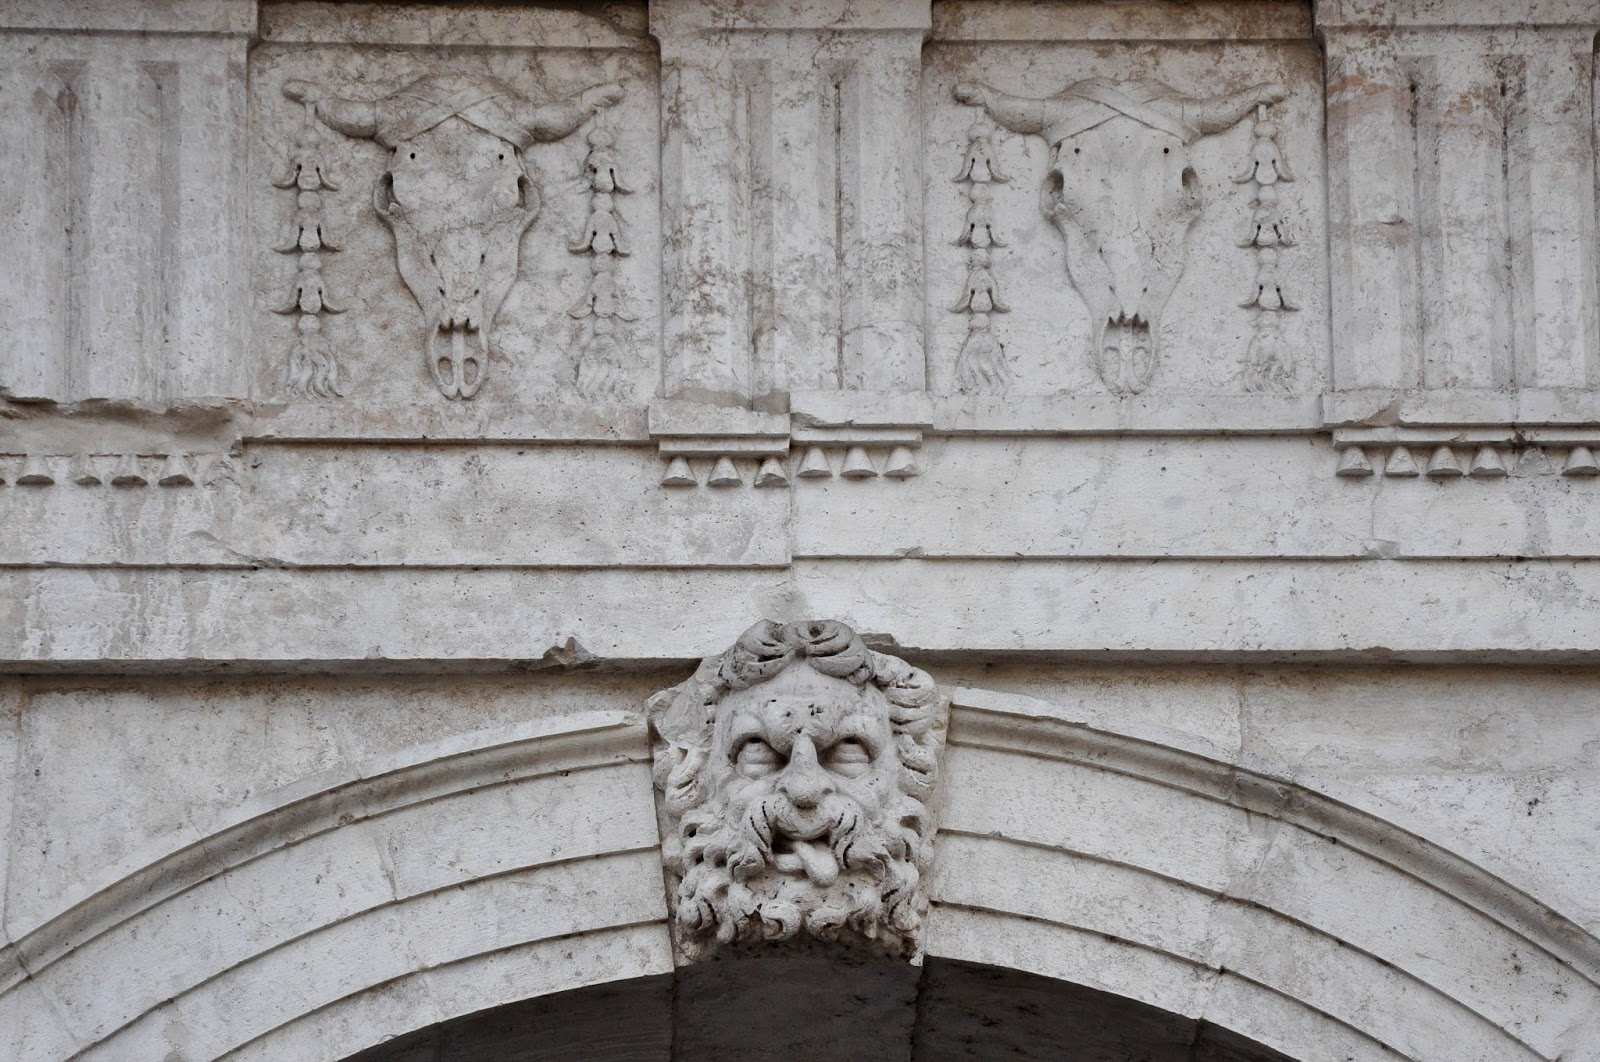 A face and two skulls on the facade of Palladio's Basilica in Vicenza, Veneto, Italy